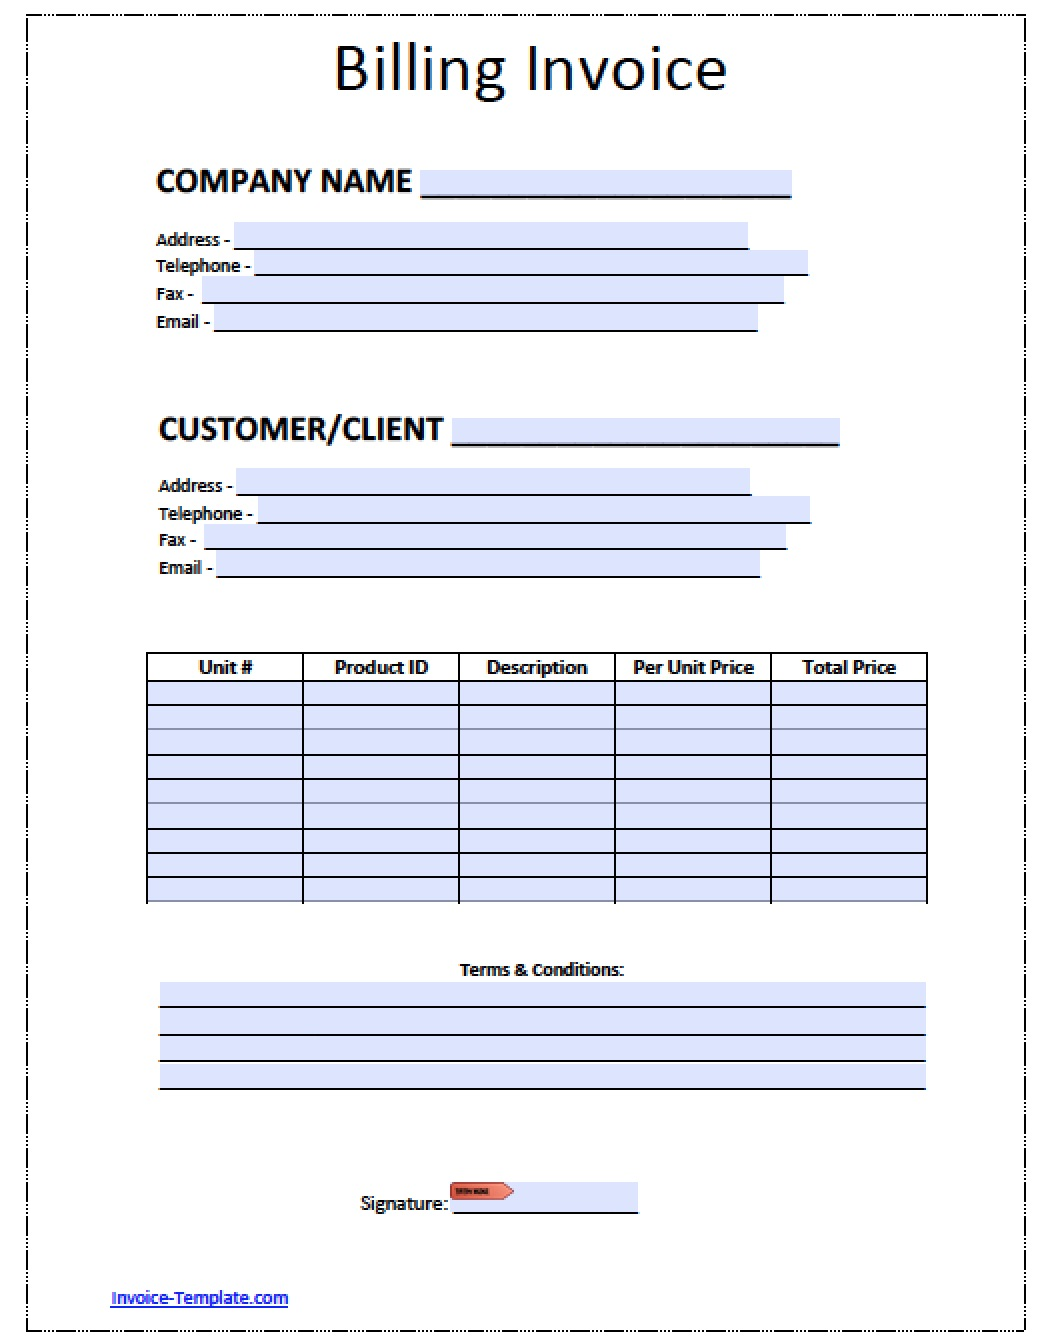 Free Billing Invoice Template Excel PDF Word Doc - Create an invoice in microsoft word dress stores online